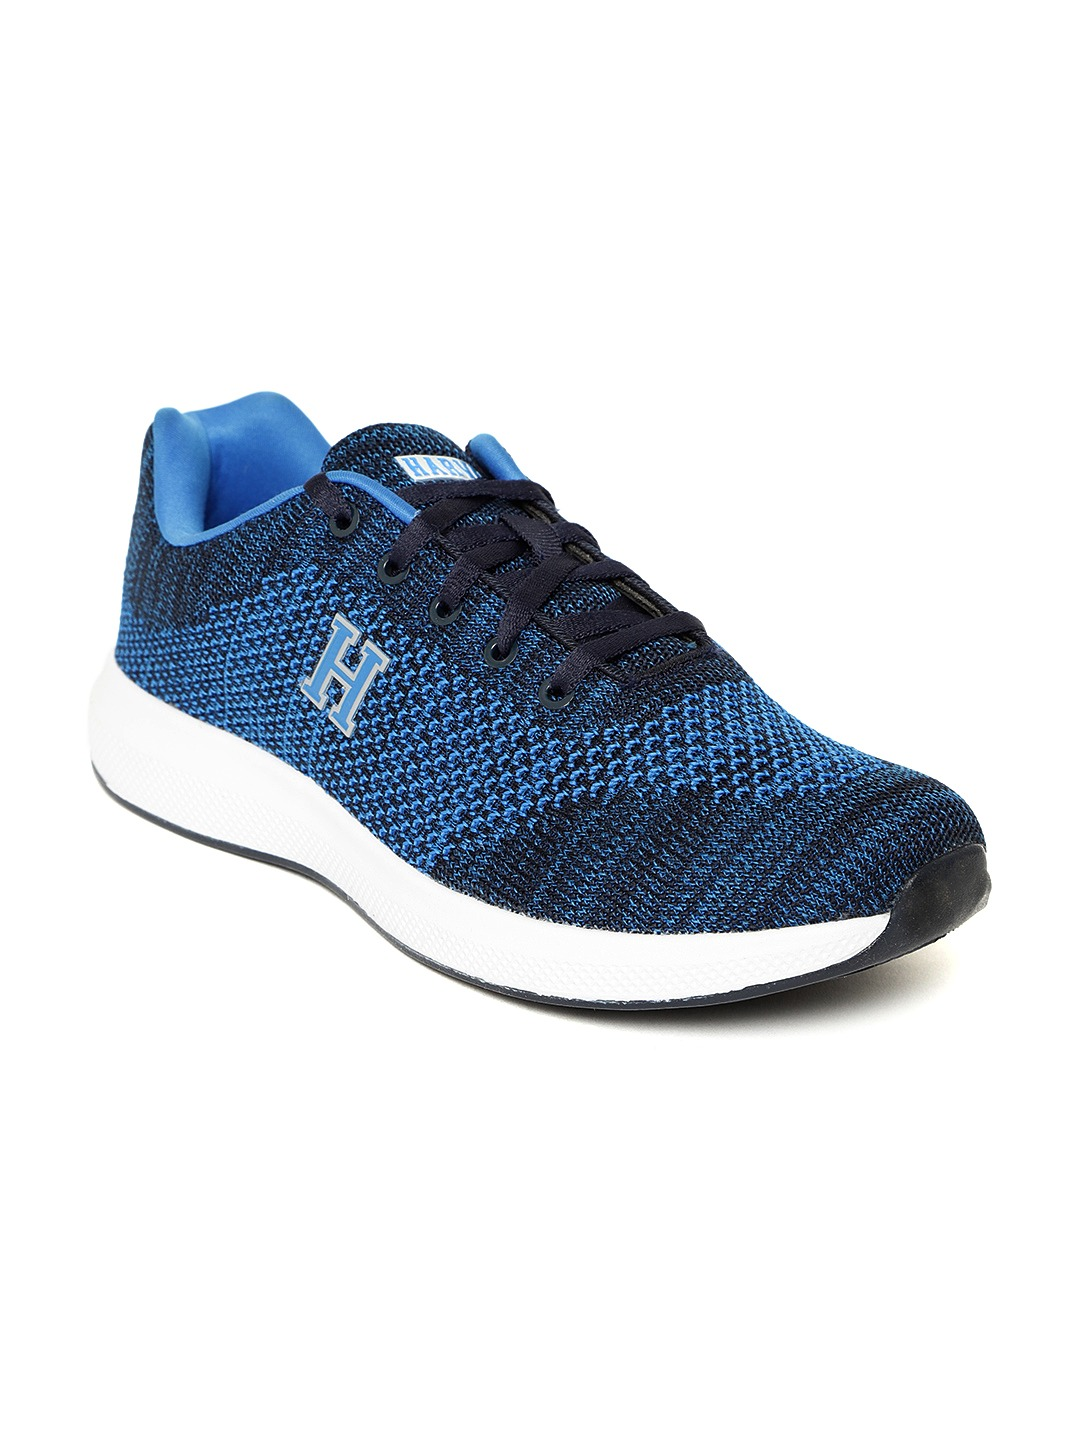 Blue Woven Design Sneakers